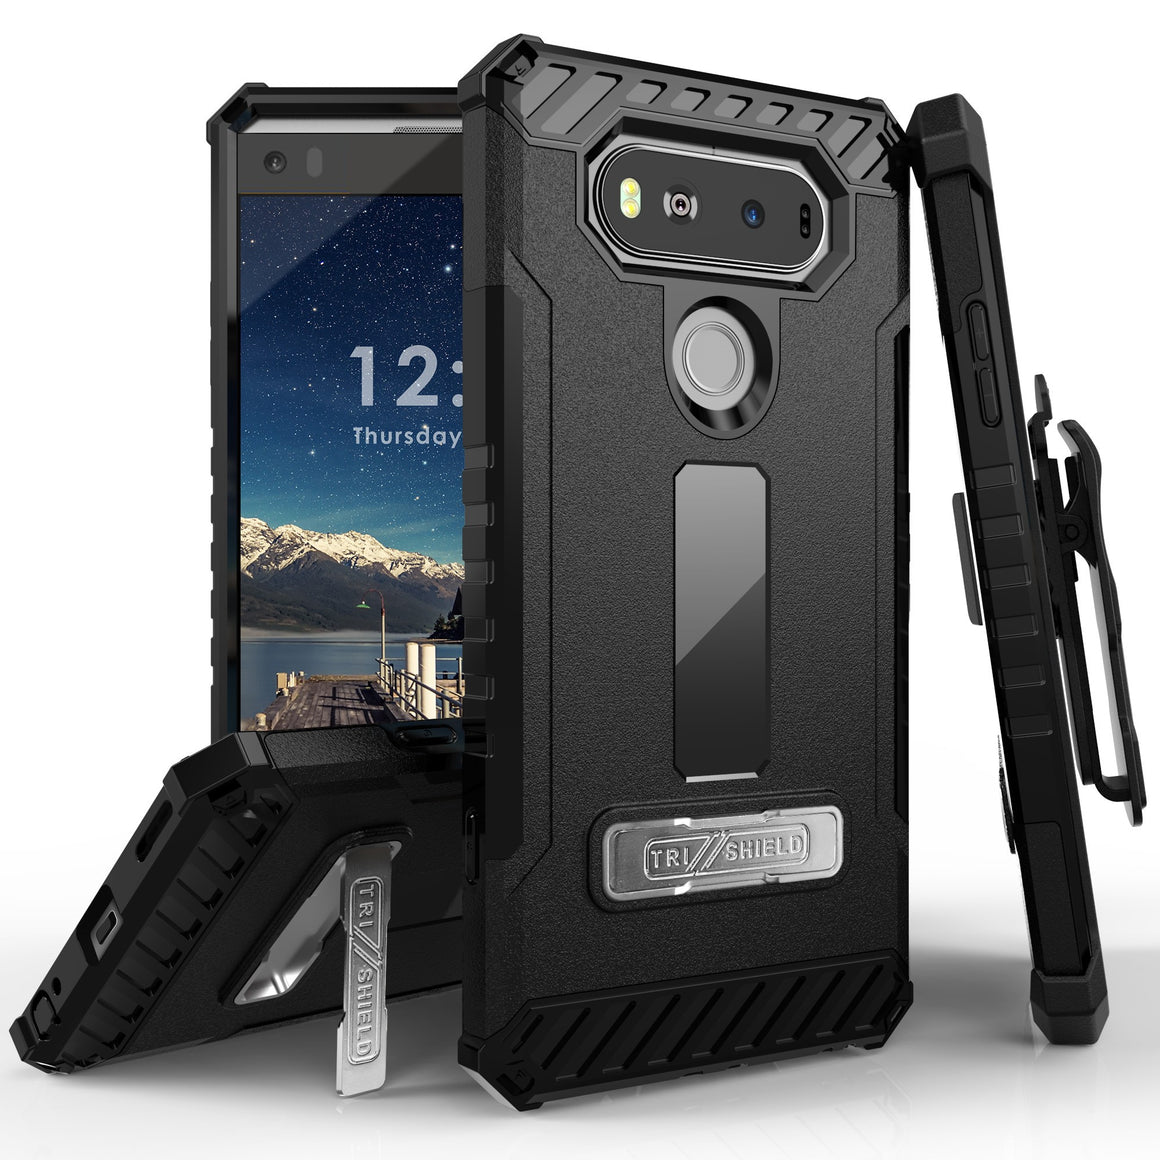 Tri Shield For LG V20 Black/Black, TPU Case,Kickstand, with Belt Clip Holster,